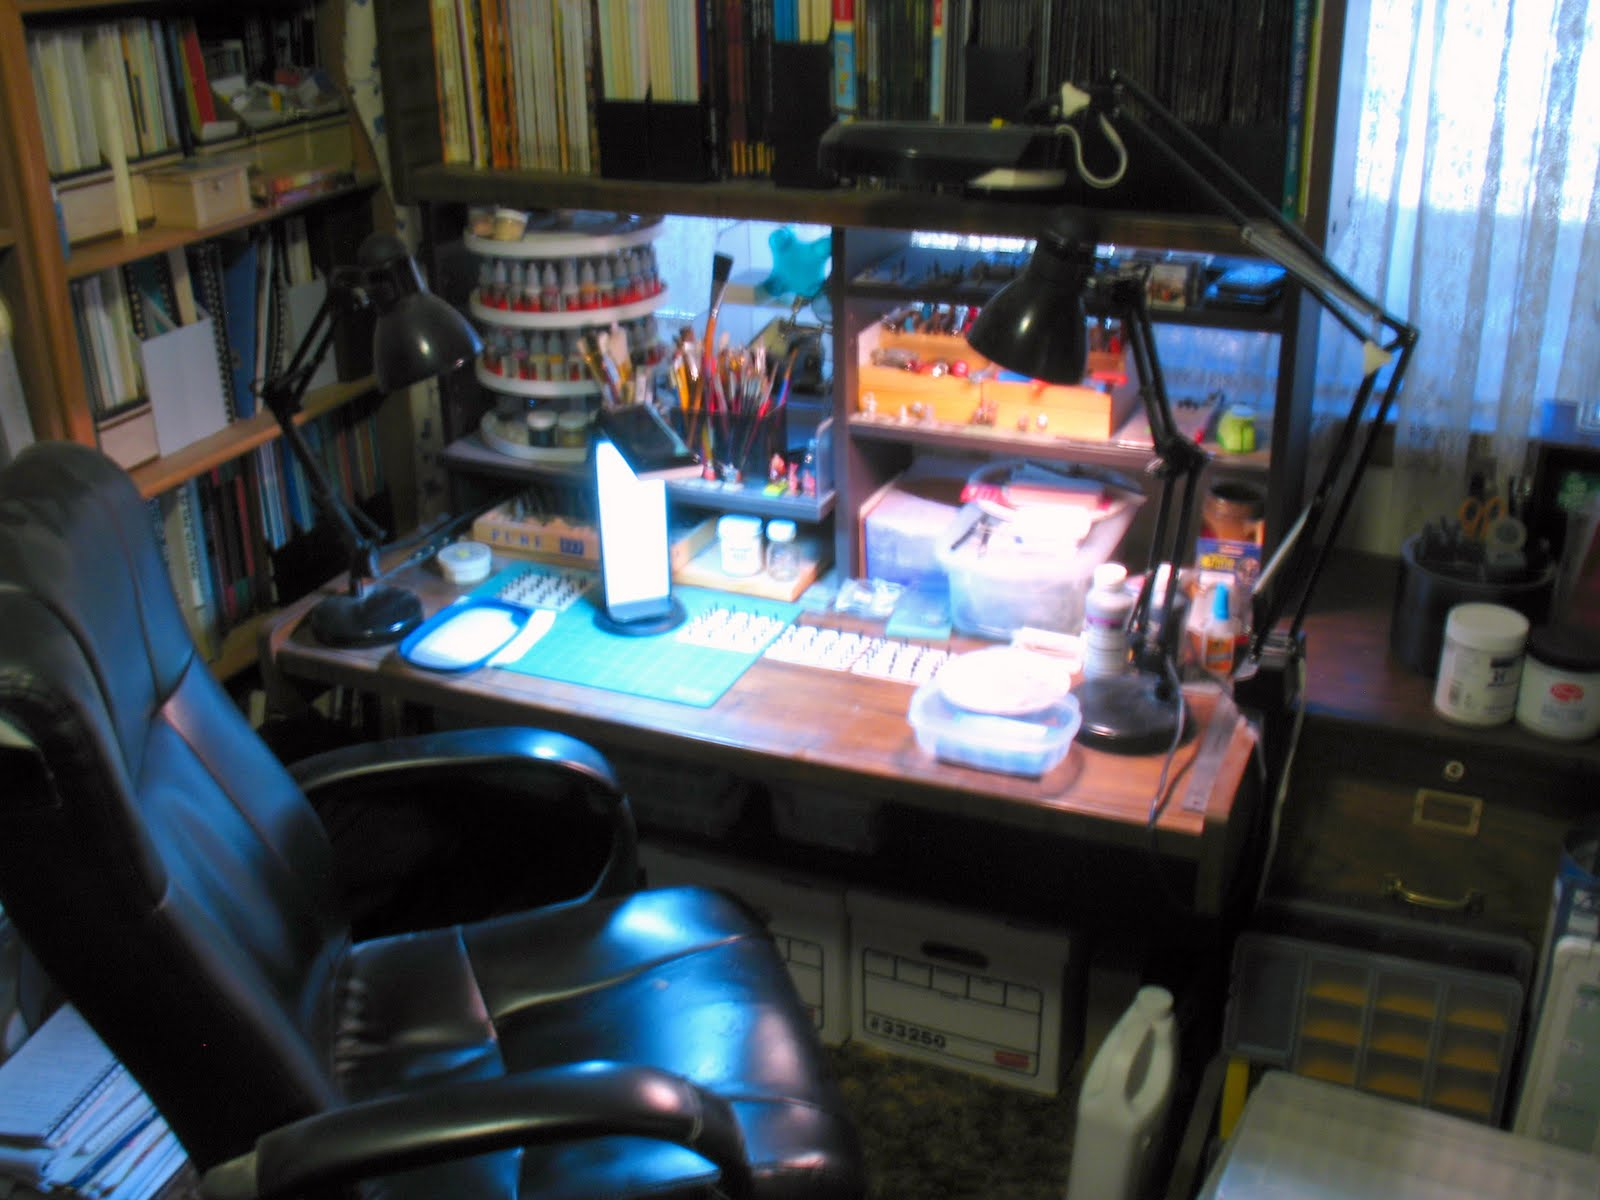 Finally Here S A Broader View Of The Painting Desk Which Really Only Shows That When Just One Daylight Lamps And Ott Light Are On